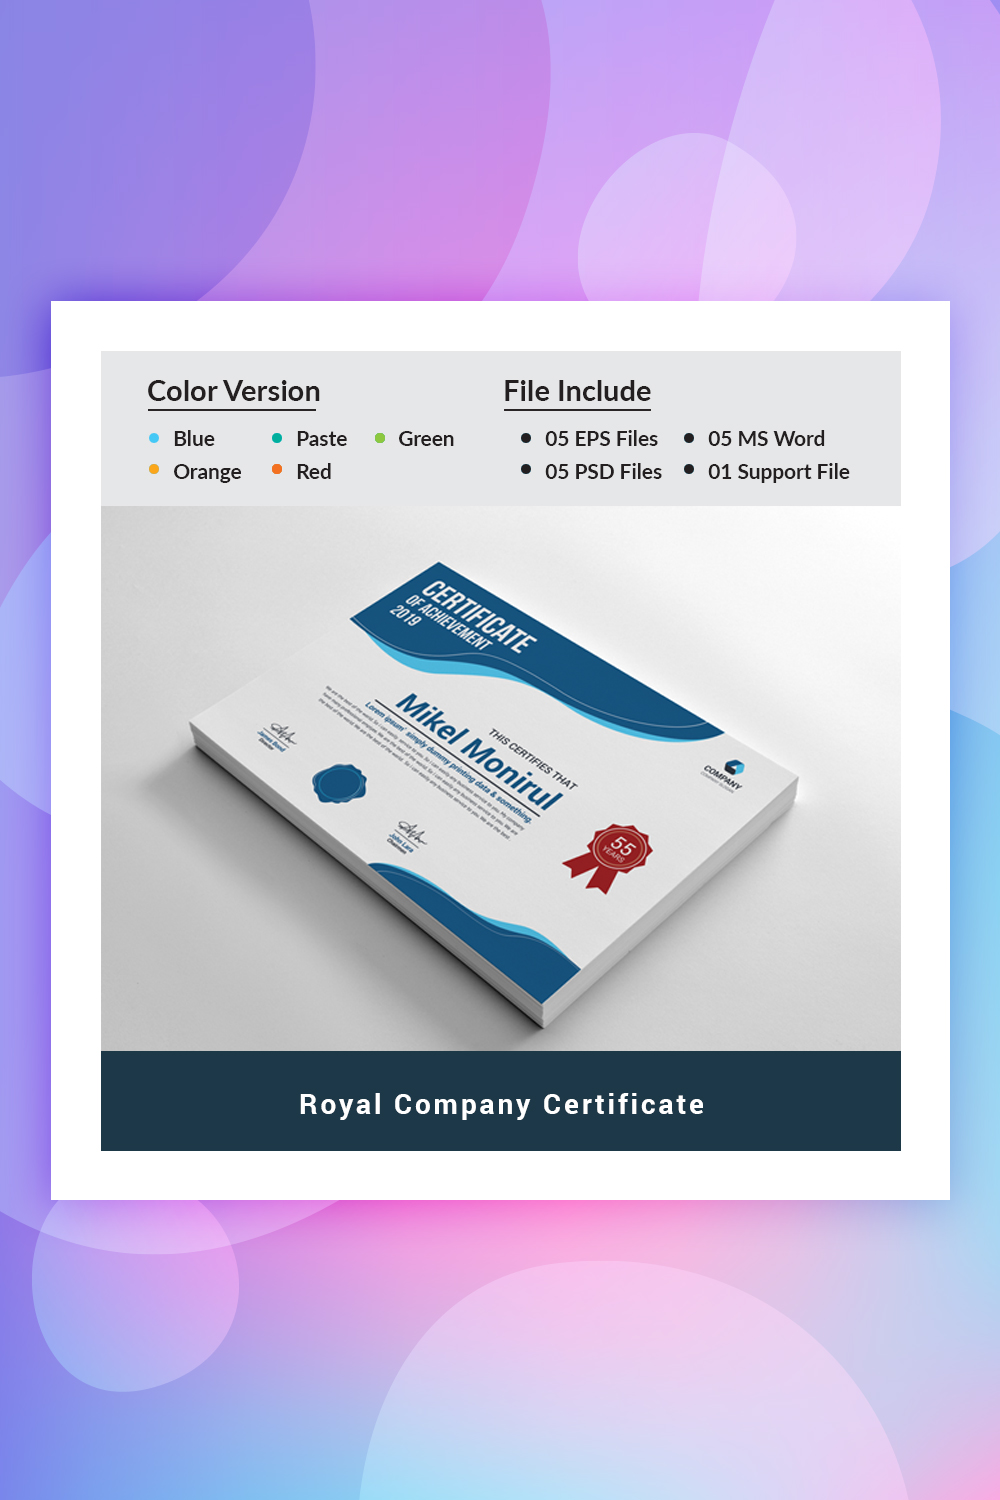 Royal Company Certificate Template